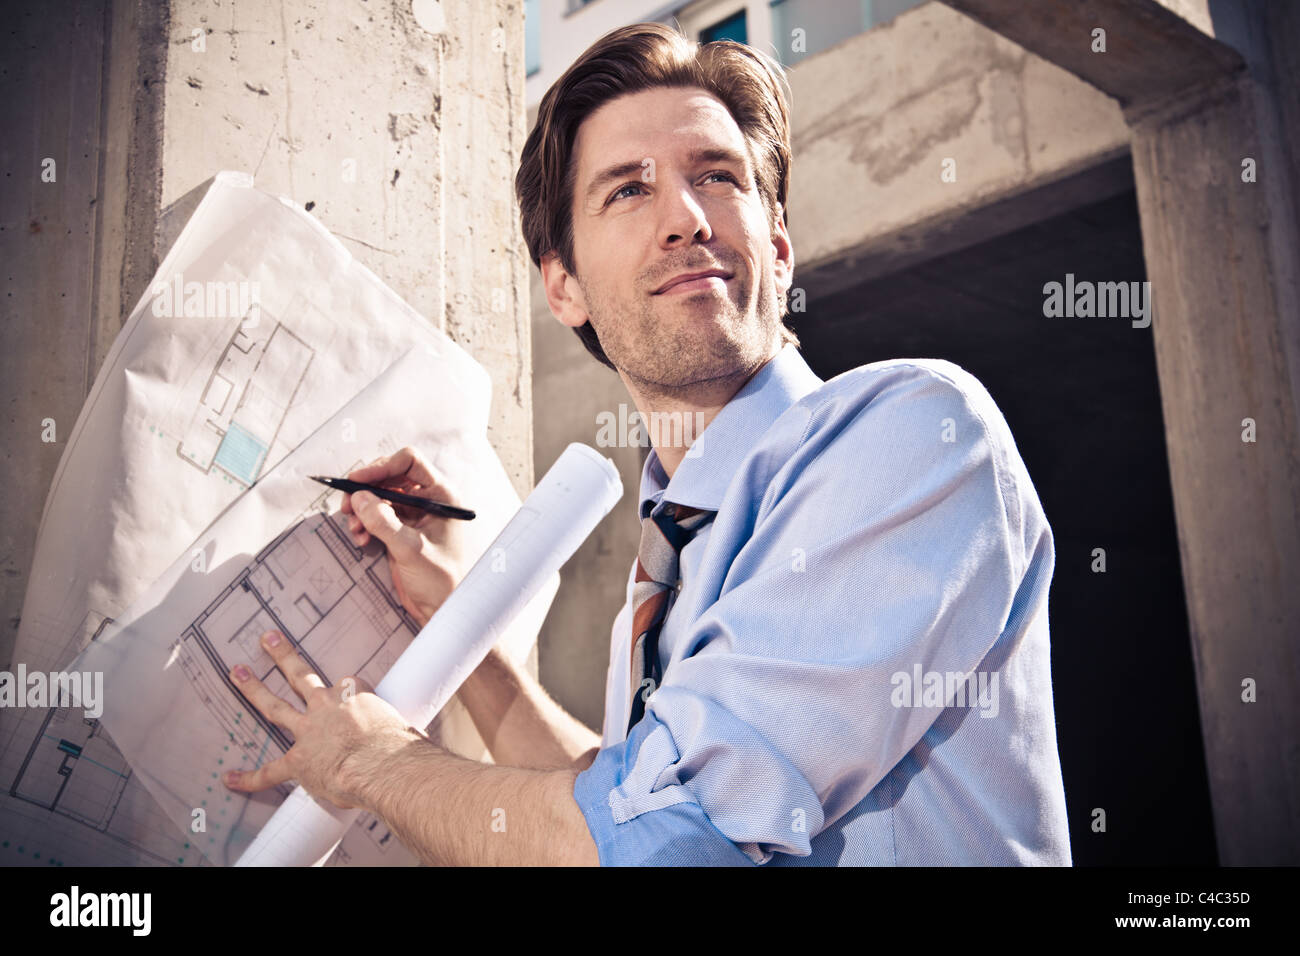 Businessman with blueprints on site - Stock Image